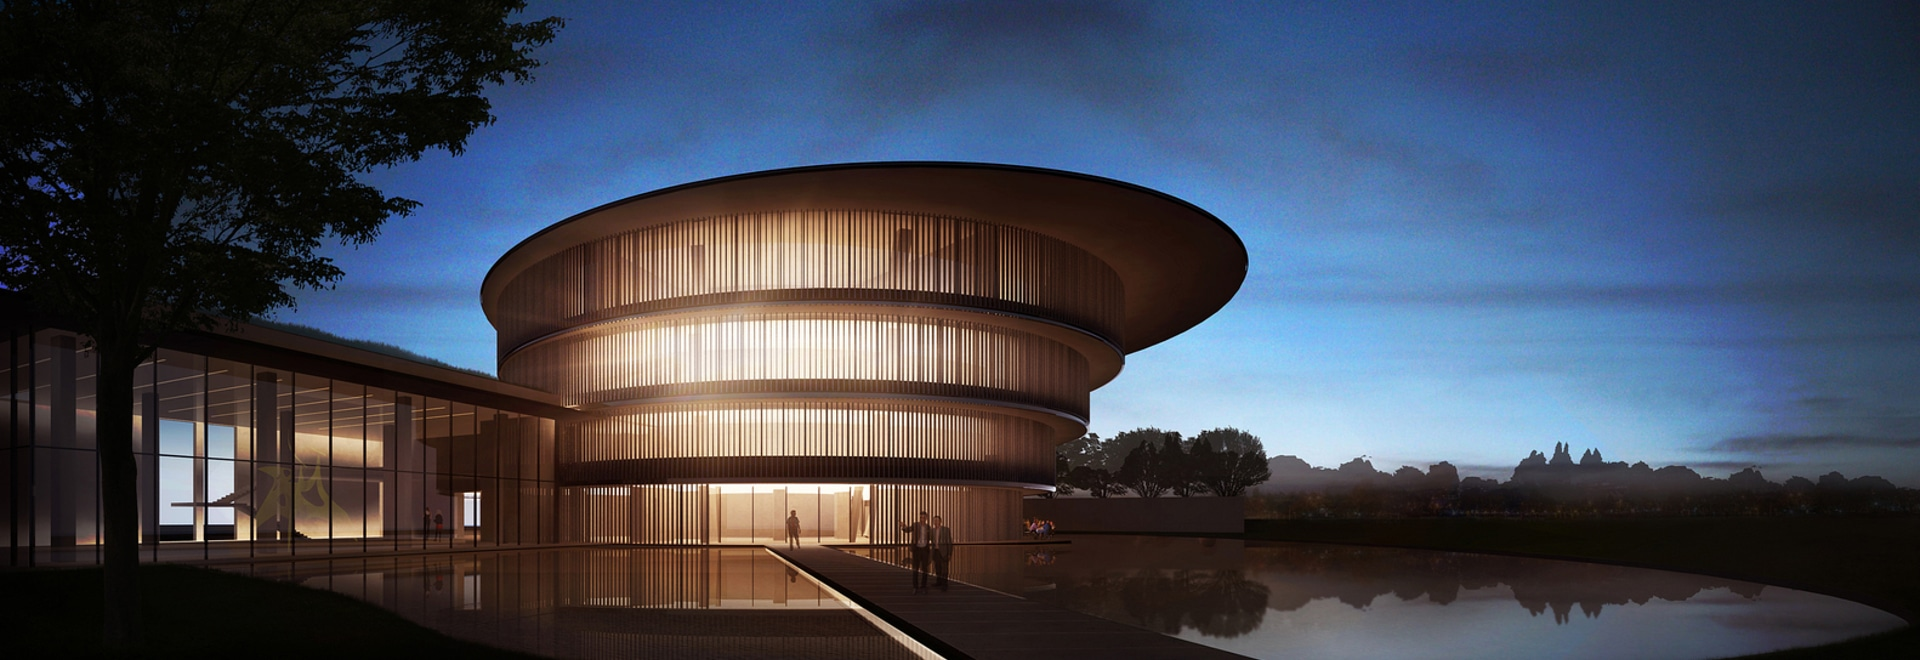 Rendering of the Tadao Ando-designed He Art Museum in China's southern city of Foshan, Guangdong Province.